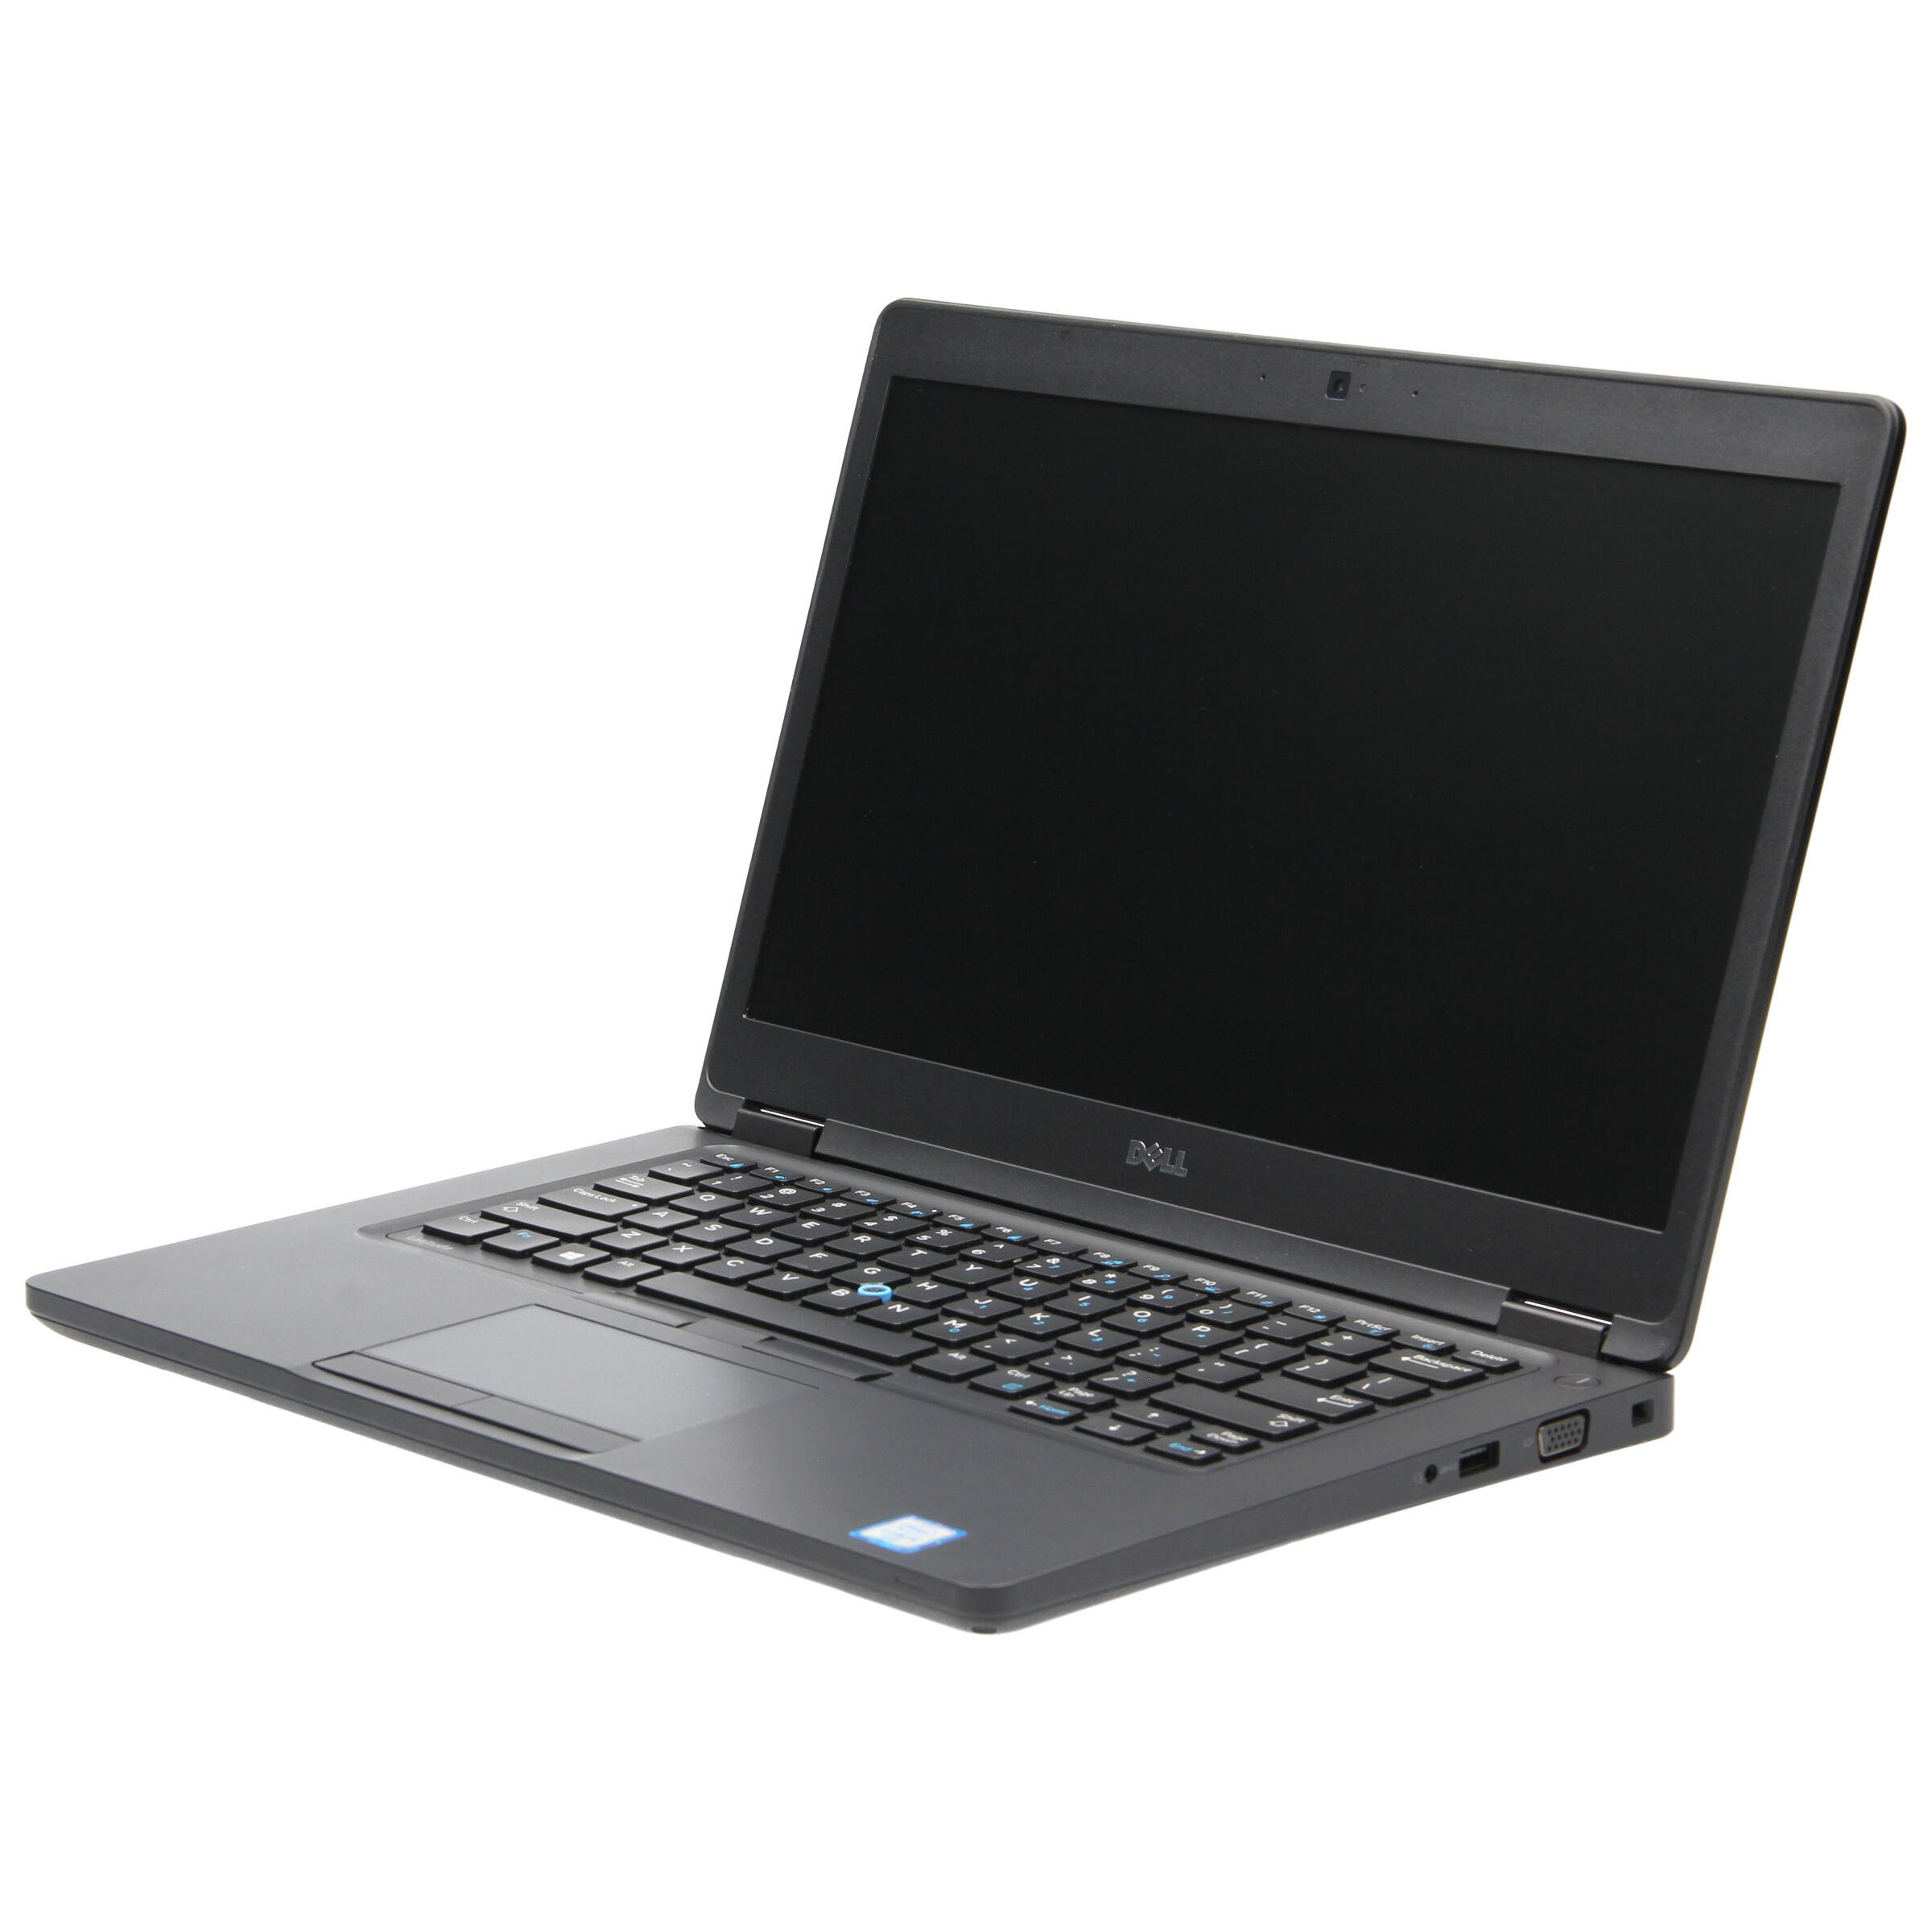 Dell 5480 do 2500 zl